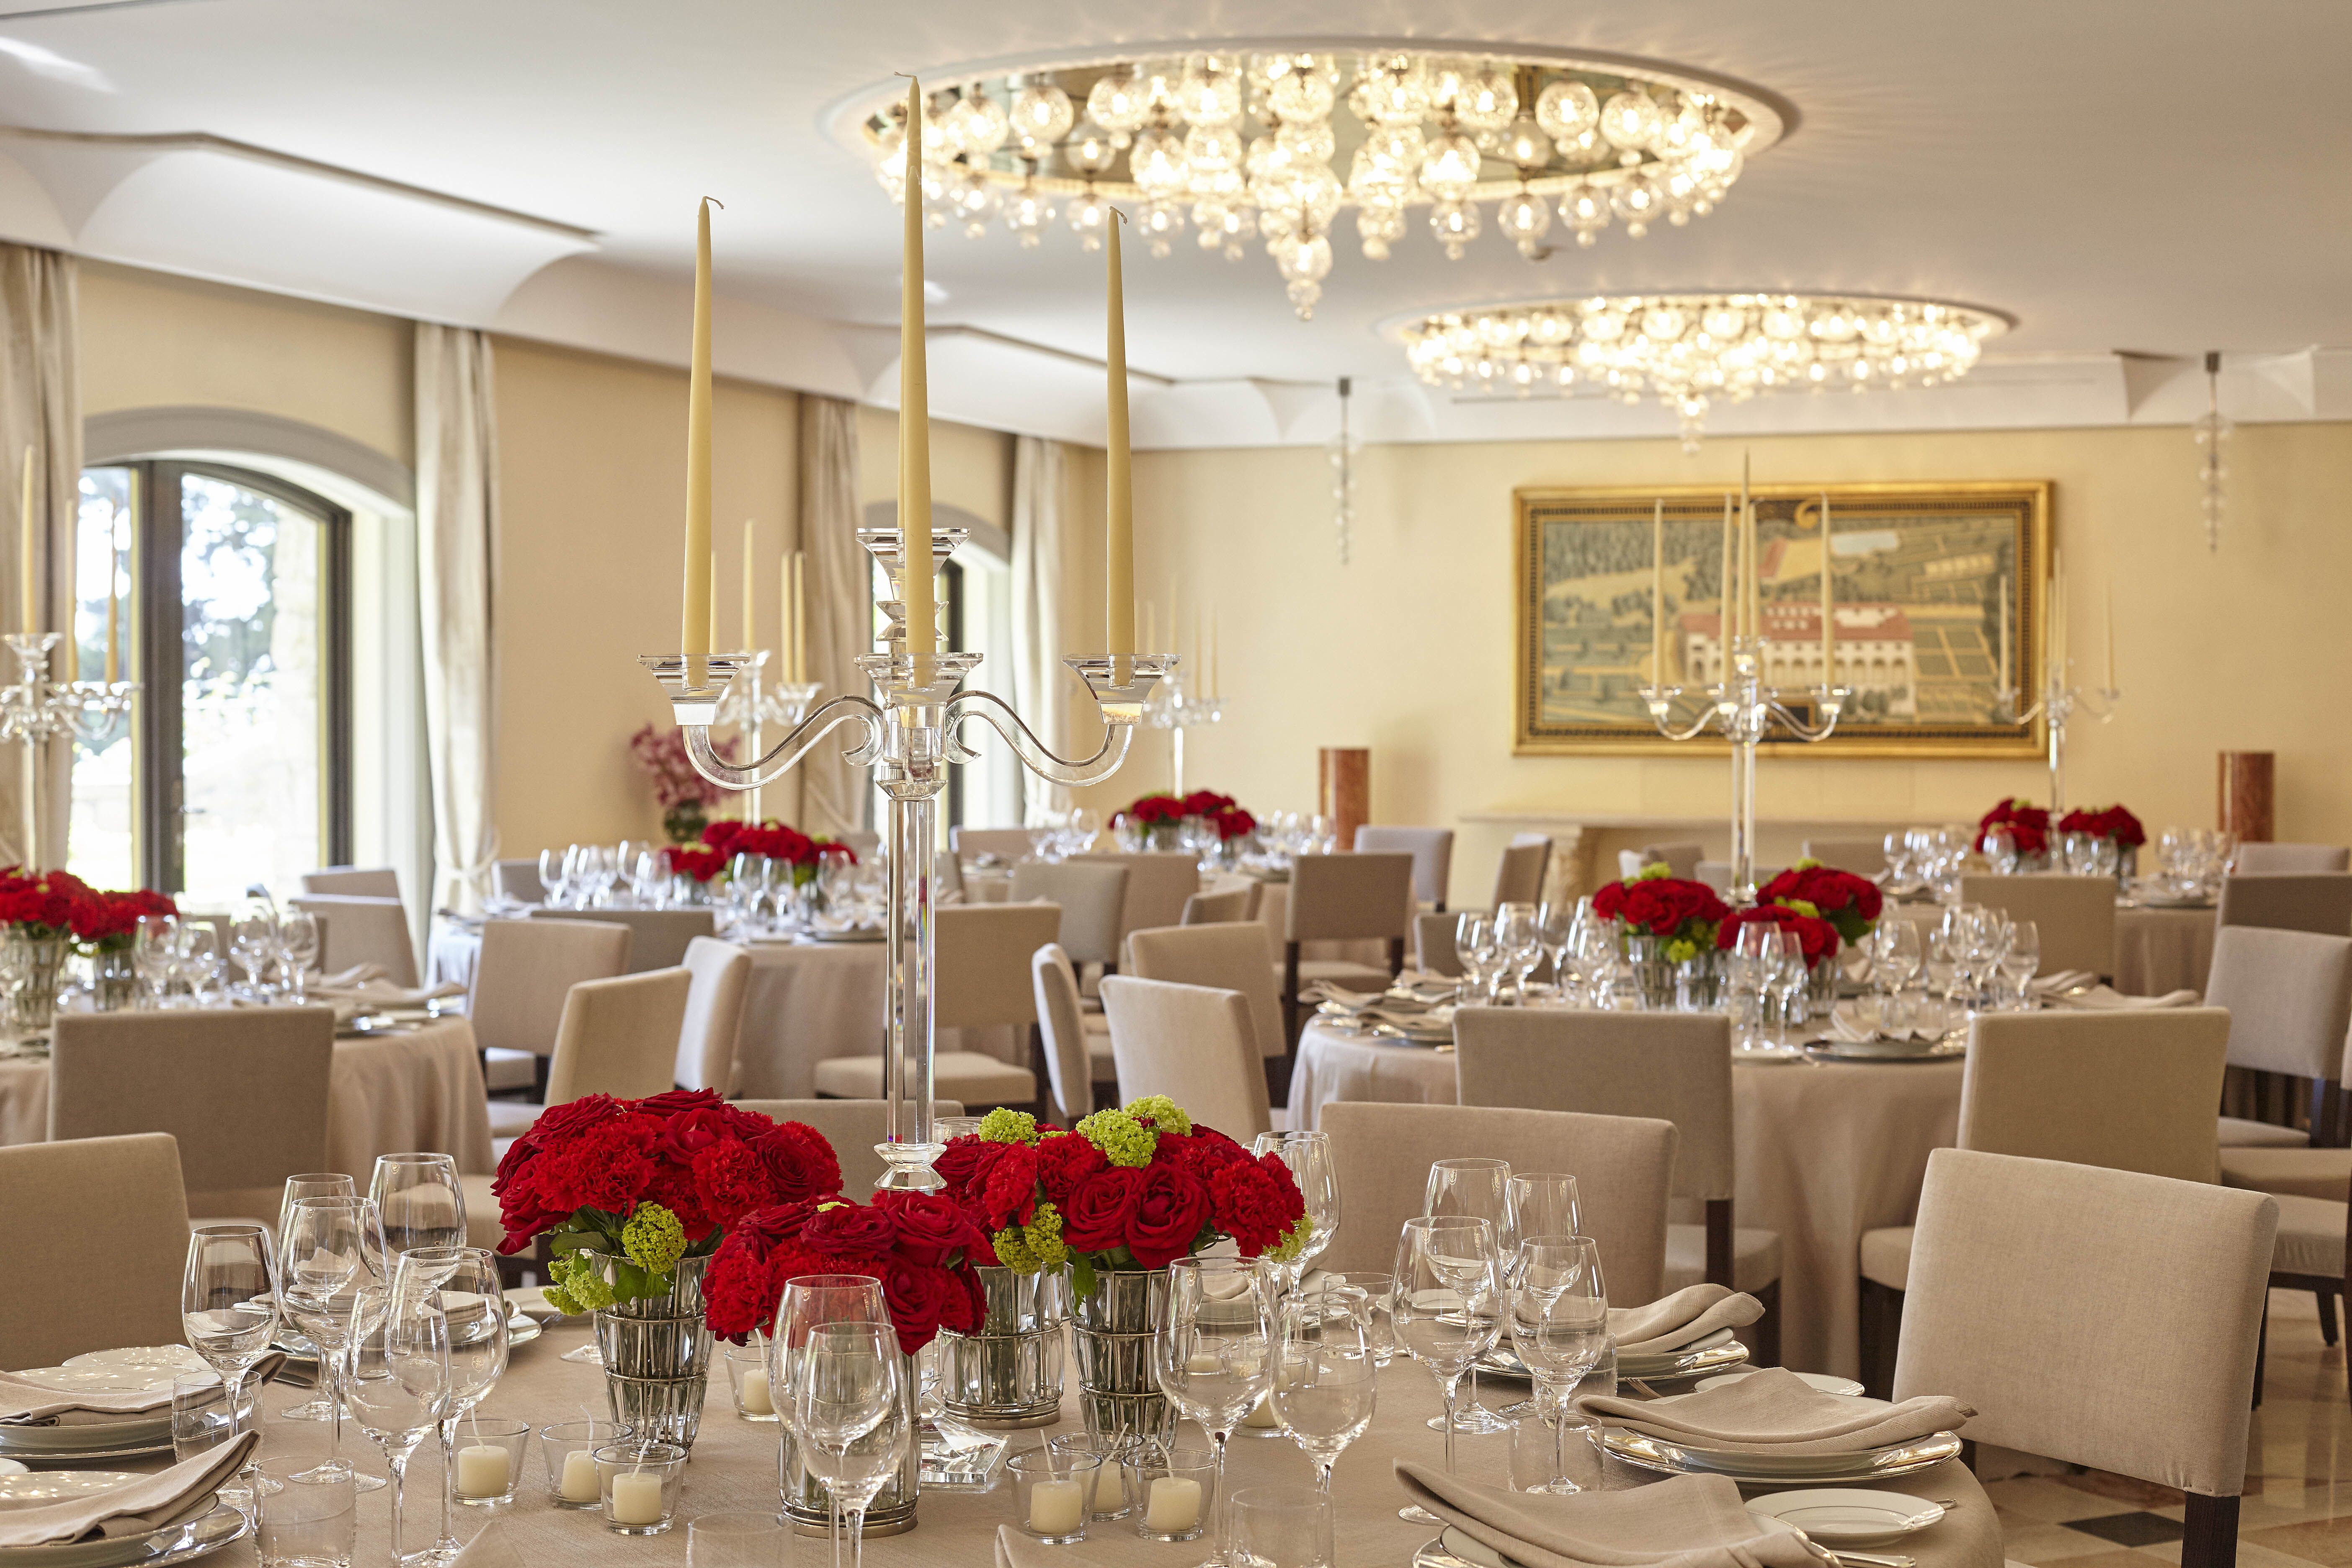 A beautiful banquet in our new Davanzati Room, with an outdoor garden area overlooking Florence and the Duomo